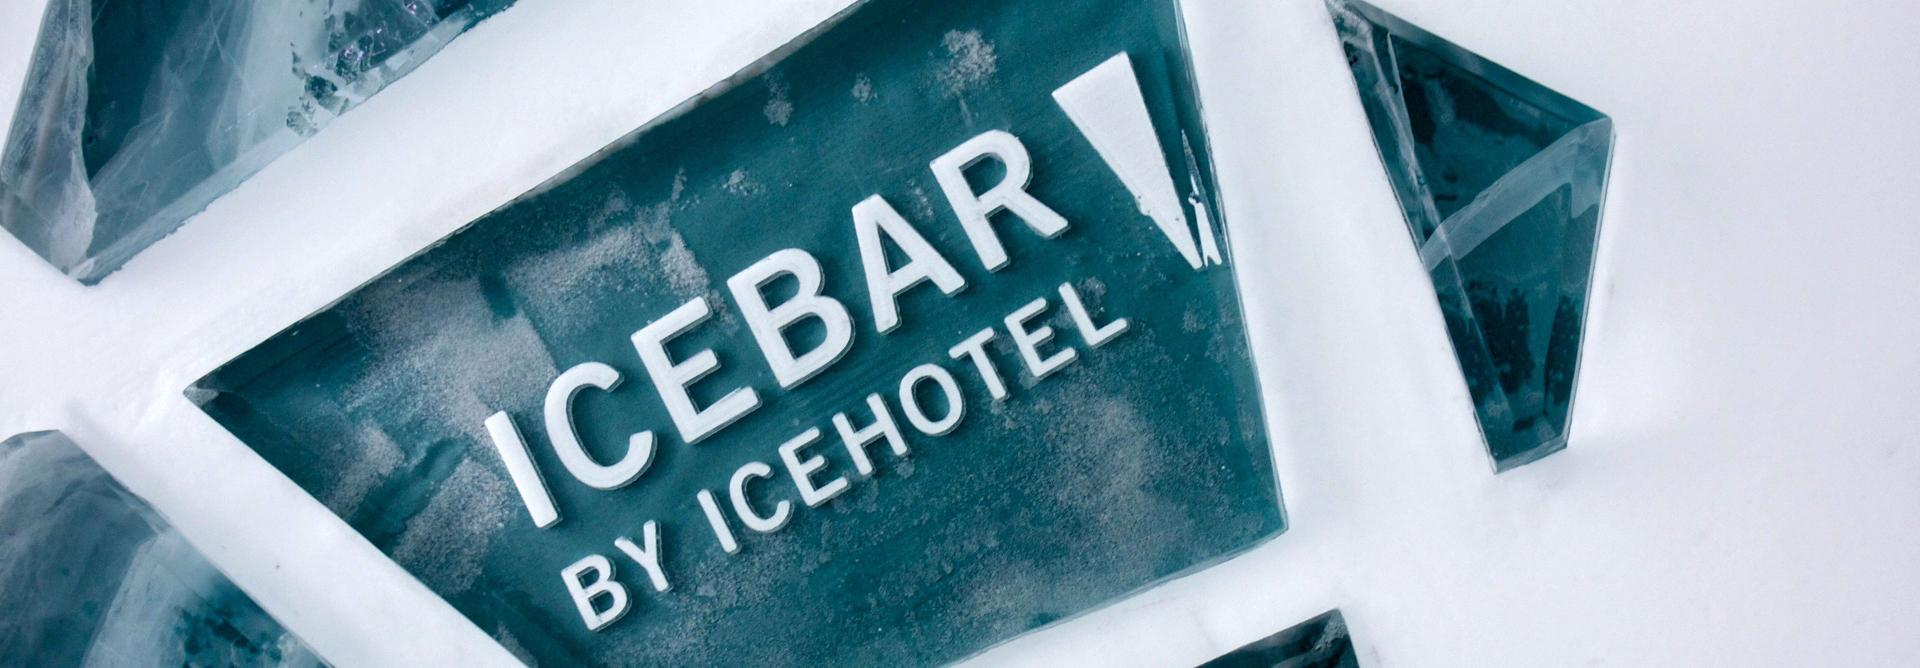 Ice Bar Hotel  - Dog Sledding Charity Challenge in Sweden